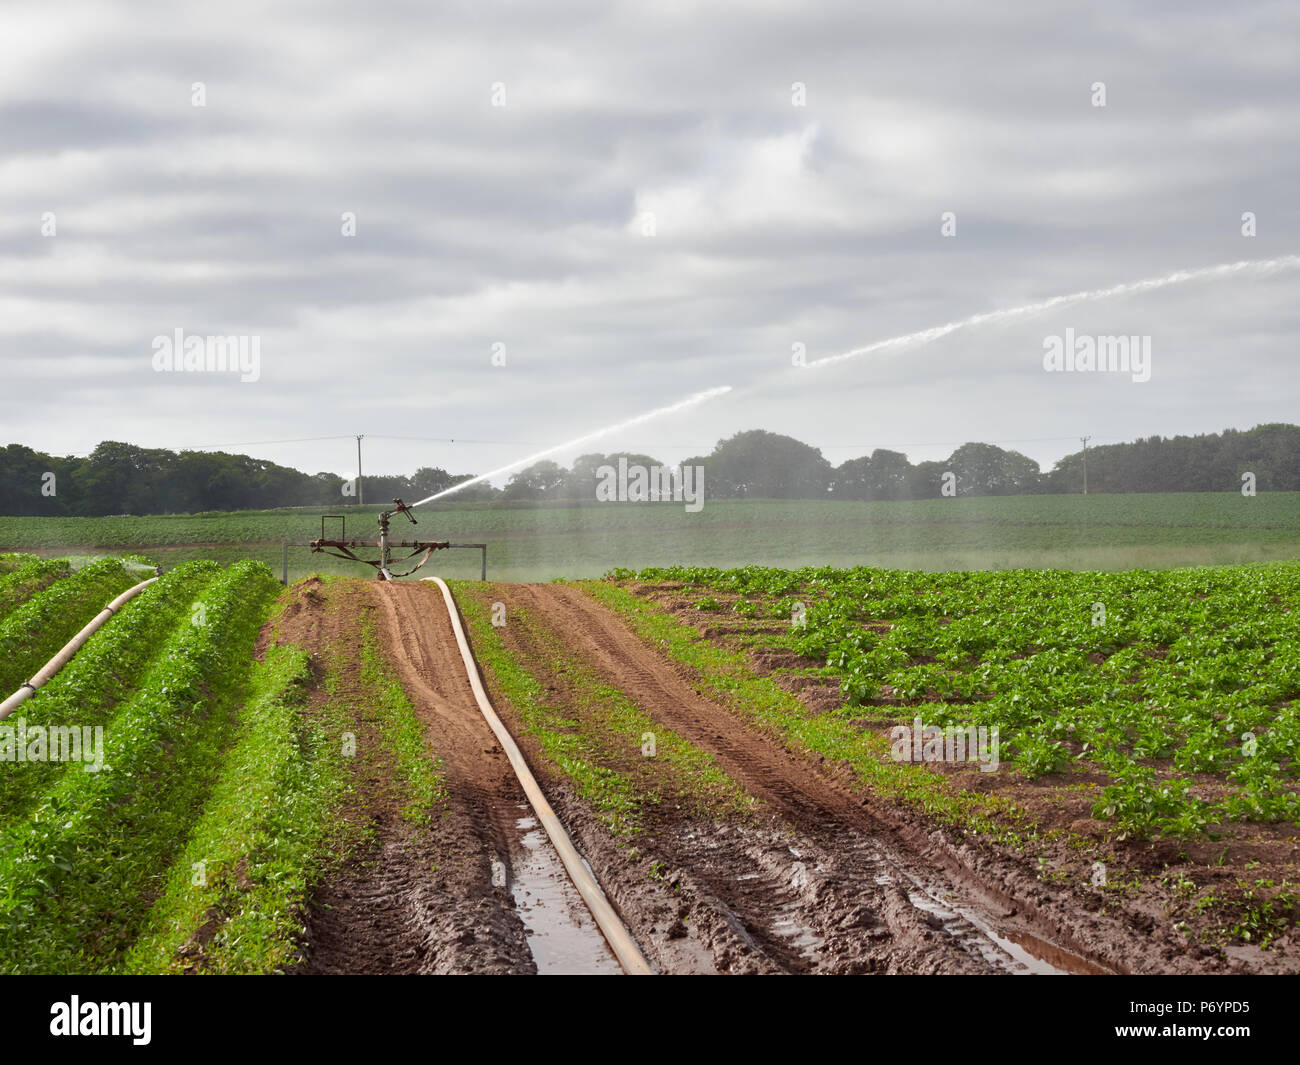 A Wrights Rainmaker Agricultural water Cannon shooting Water out to the right over Furrows of planted Potato Plants in Colliston, Angus, Scotland. - Stock Image